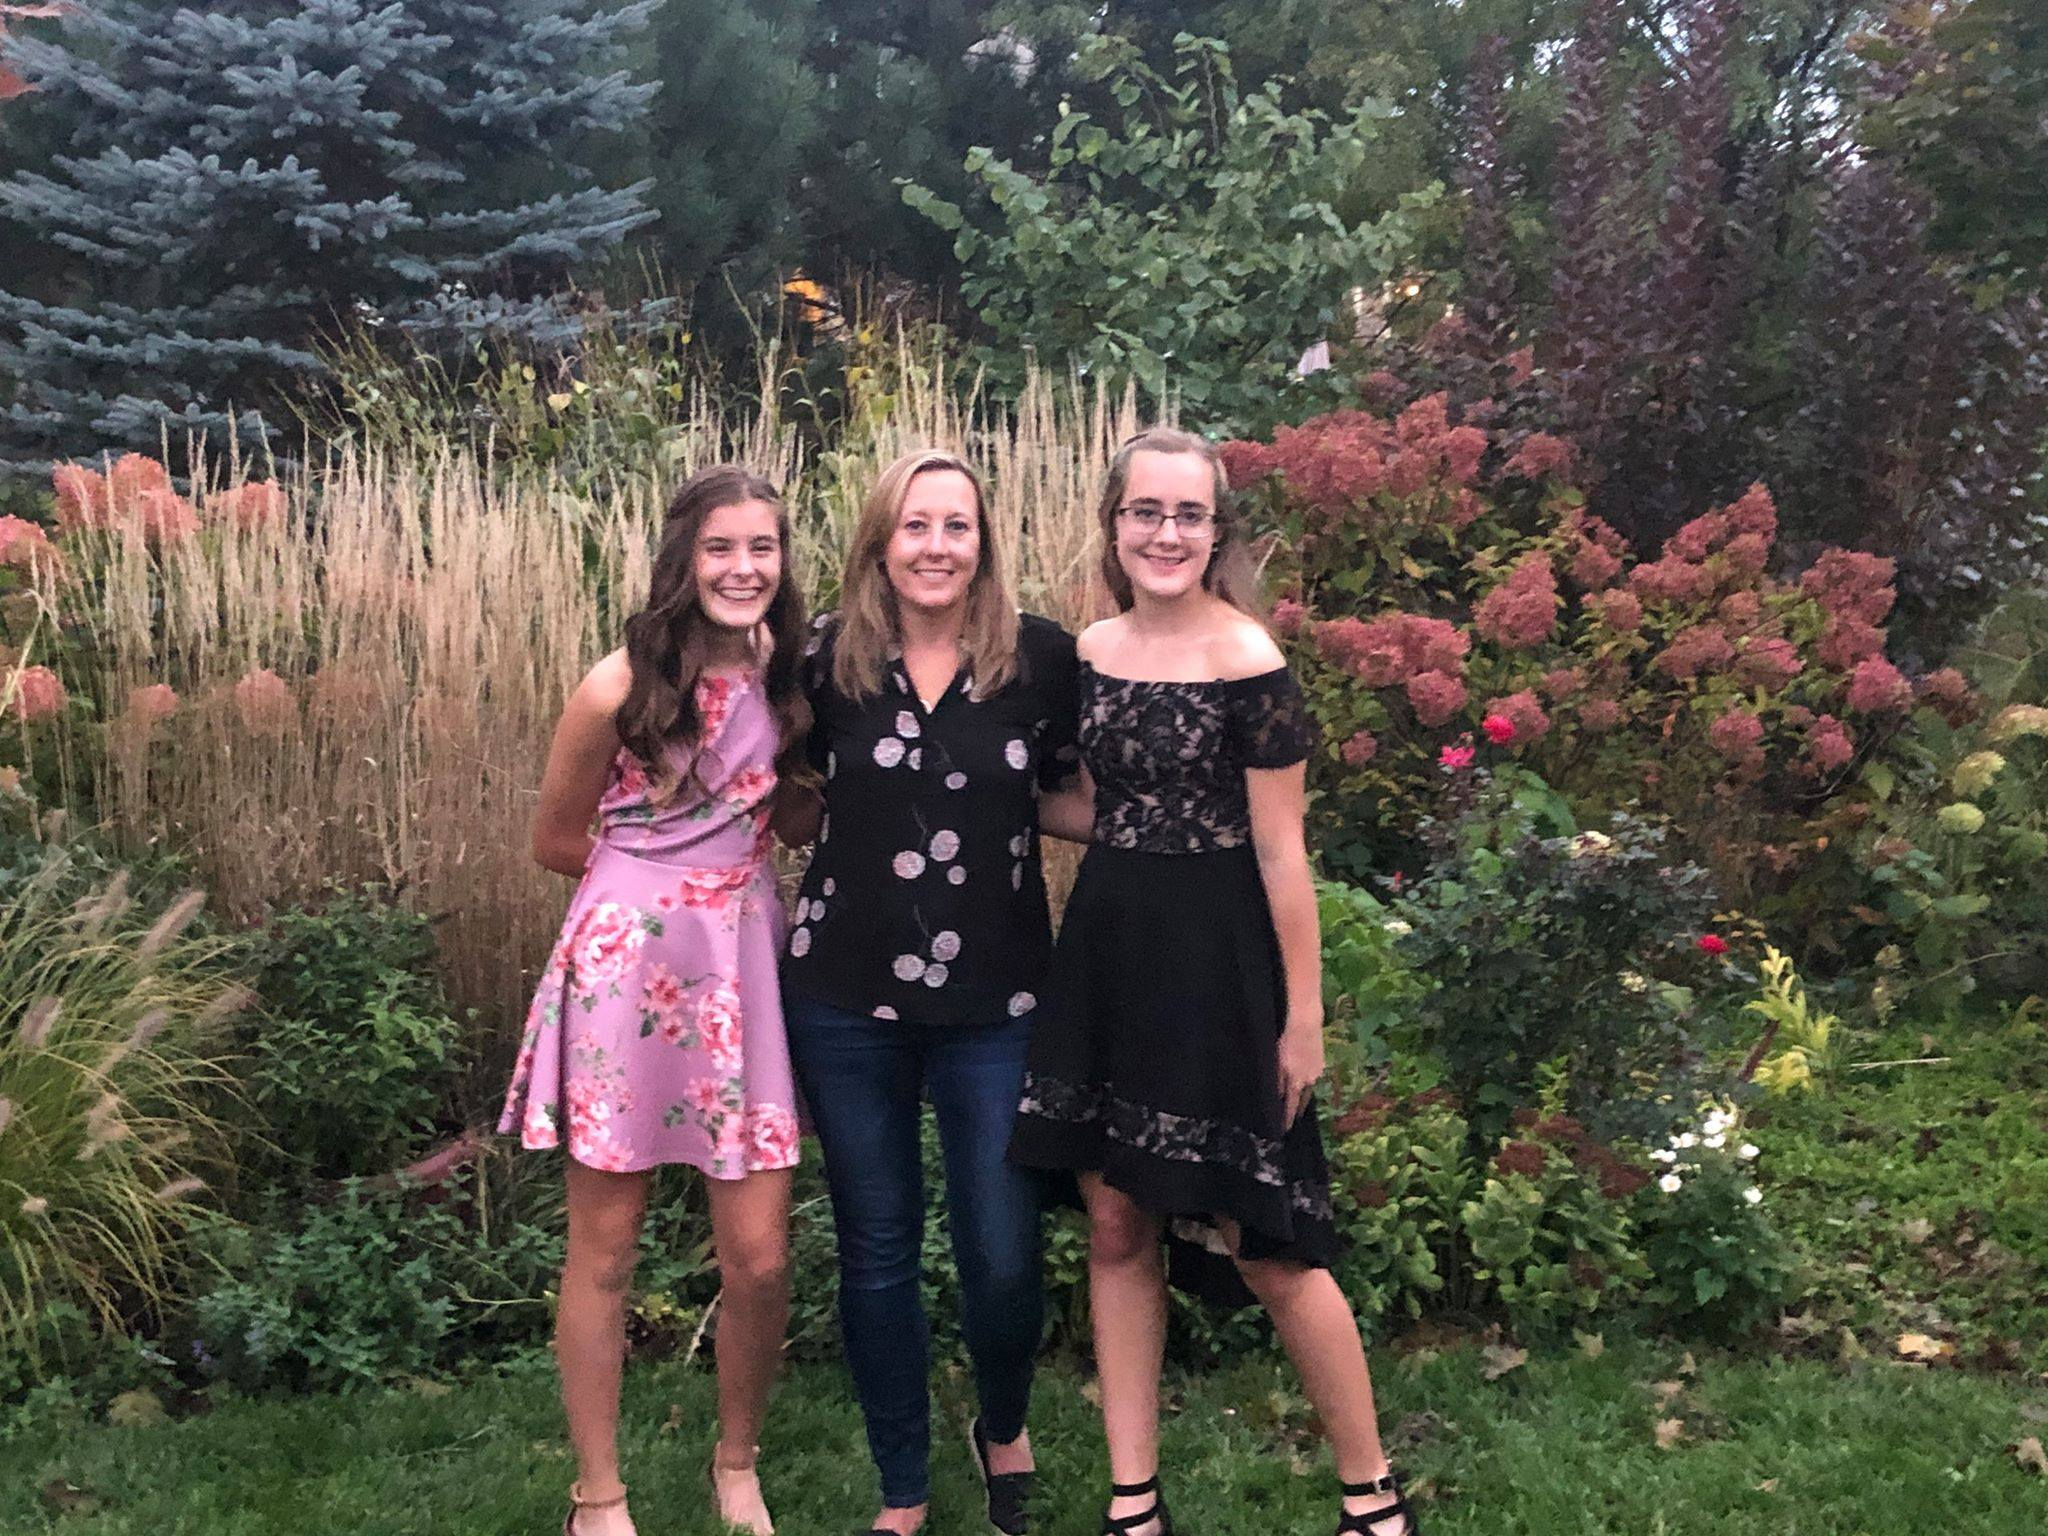 Mom and two teen daughters